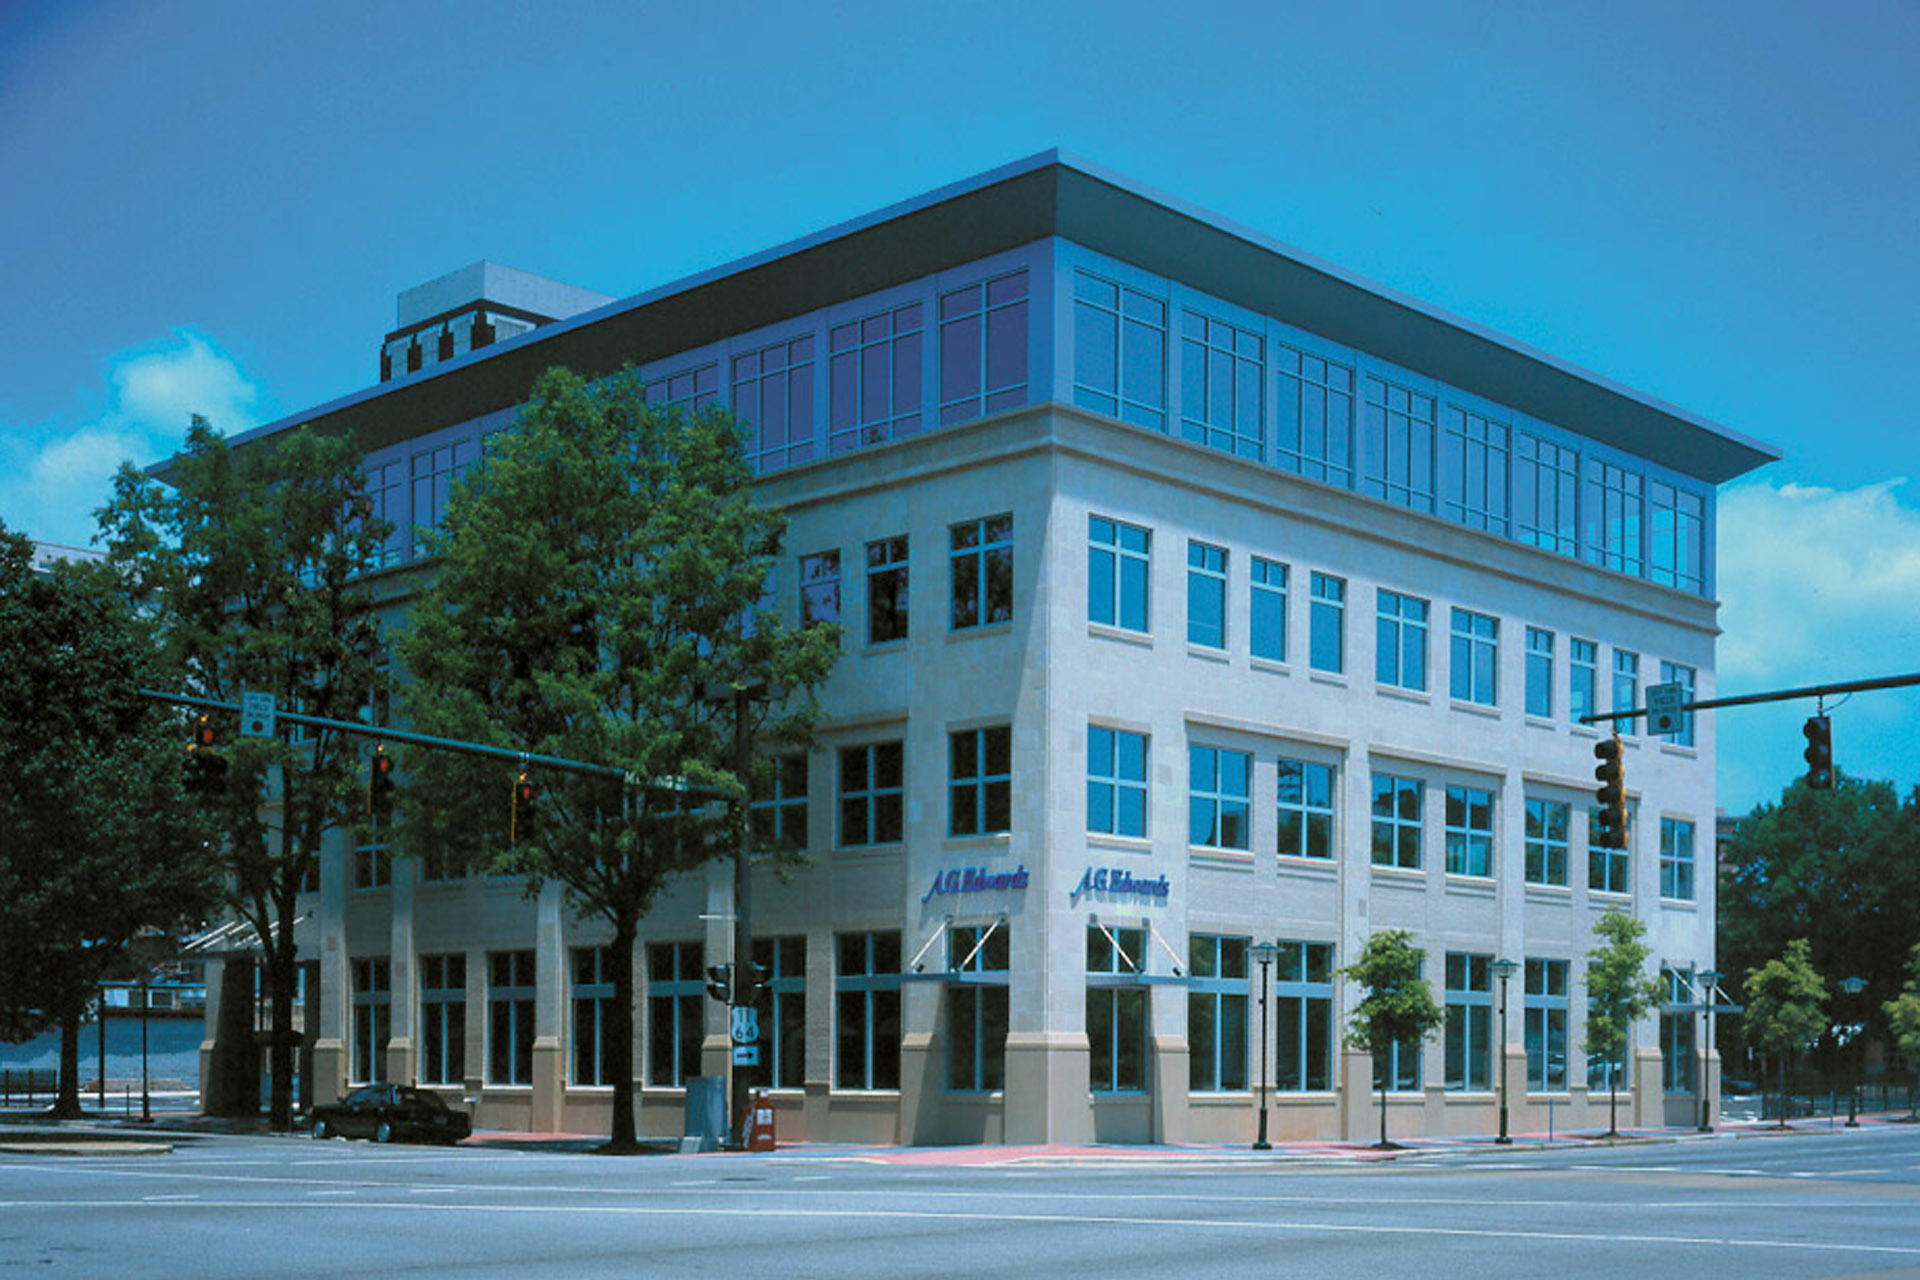 At Artech Design Group, we have over 30 years of experience in office architecture and interior design.